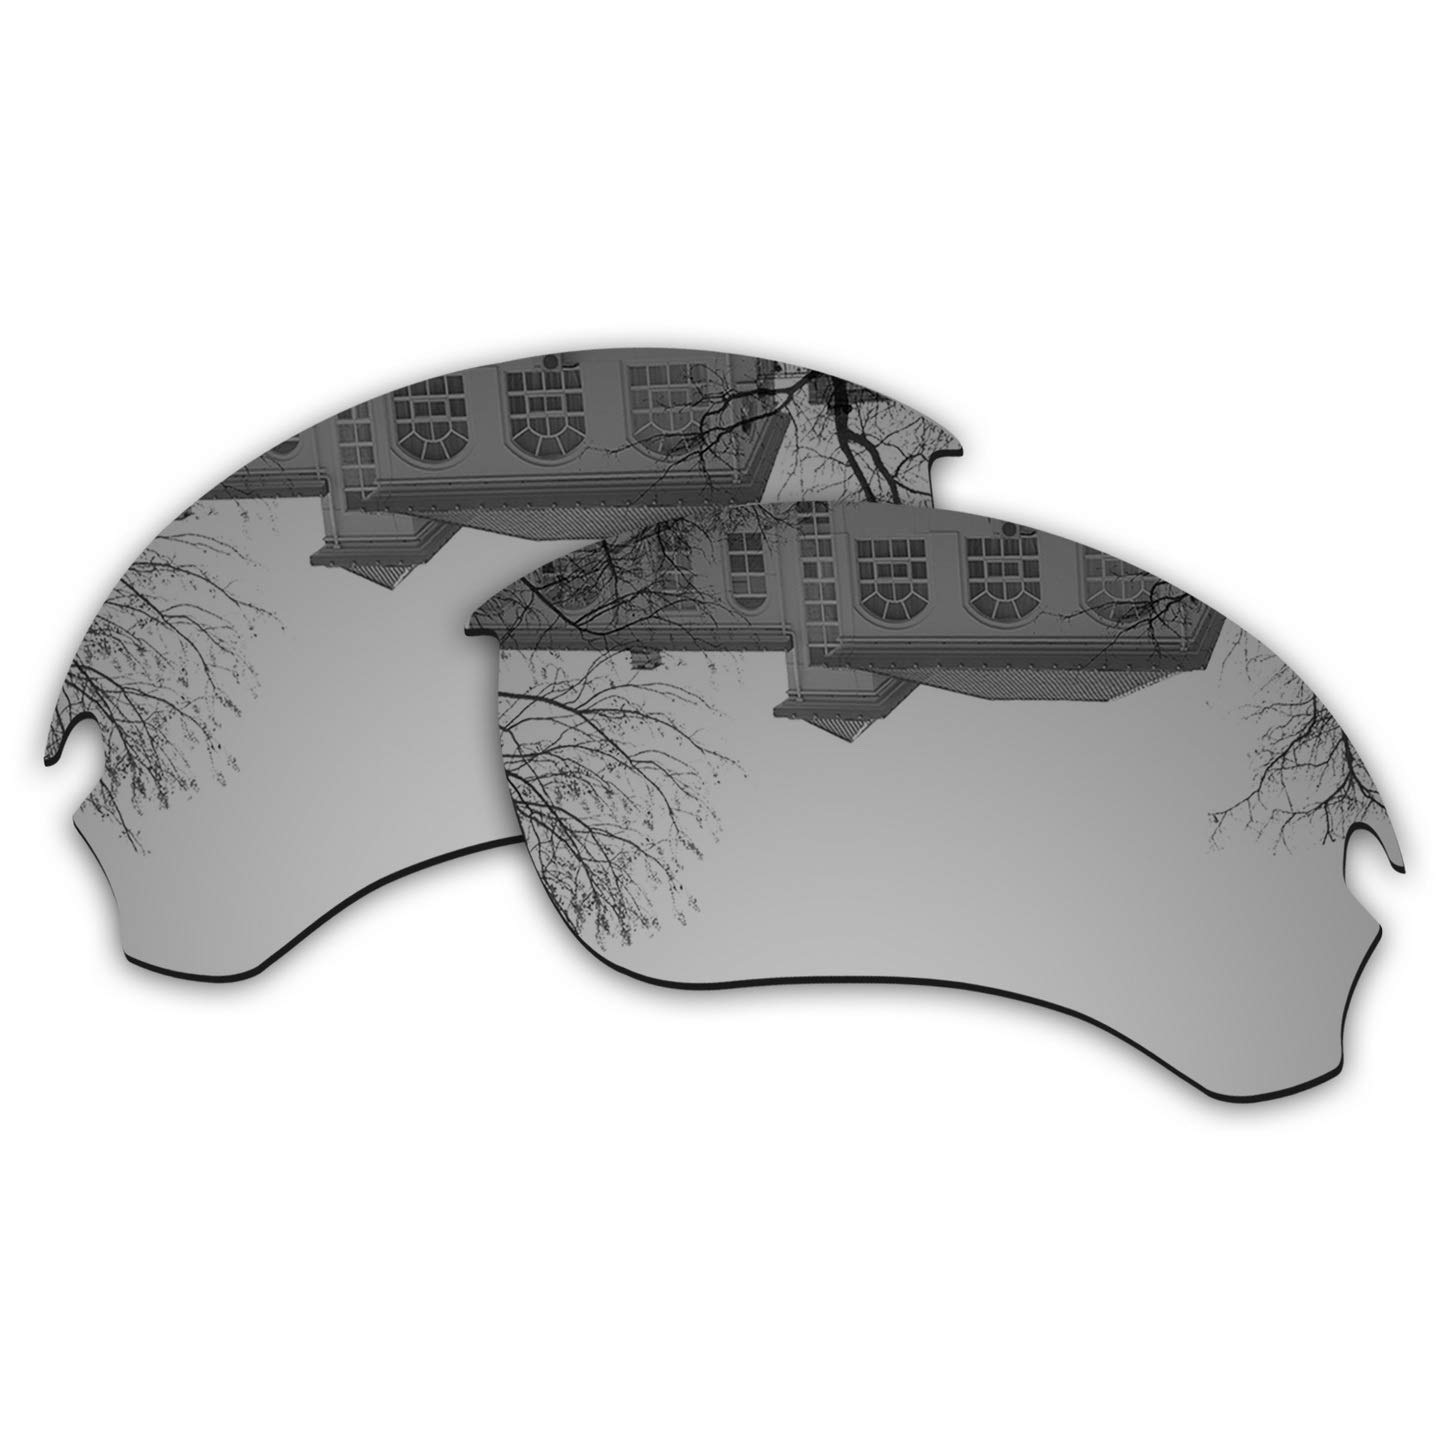 Millersawp Flak Draft OO9364 Replacement Lenses Compatiable with Oakley Sunglass-Silver Iridium by Millersawp